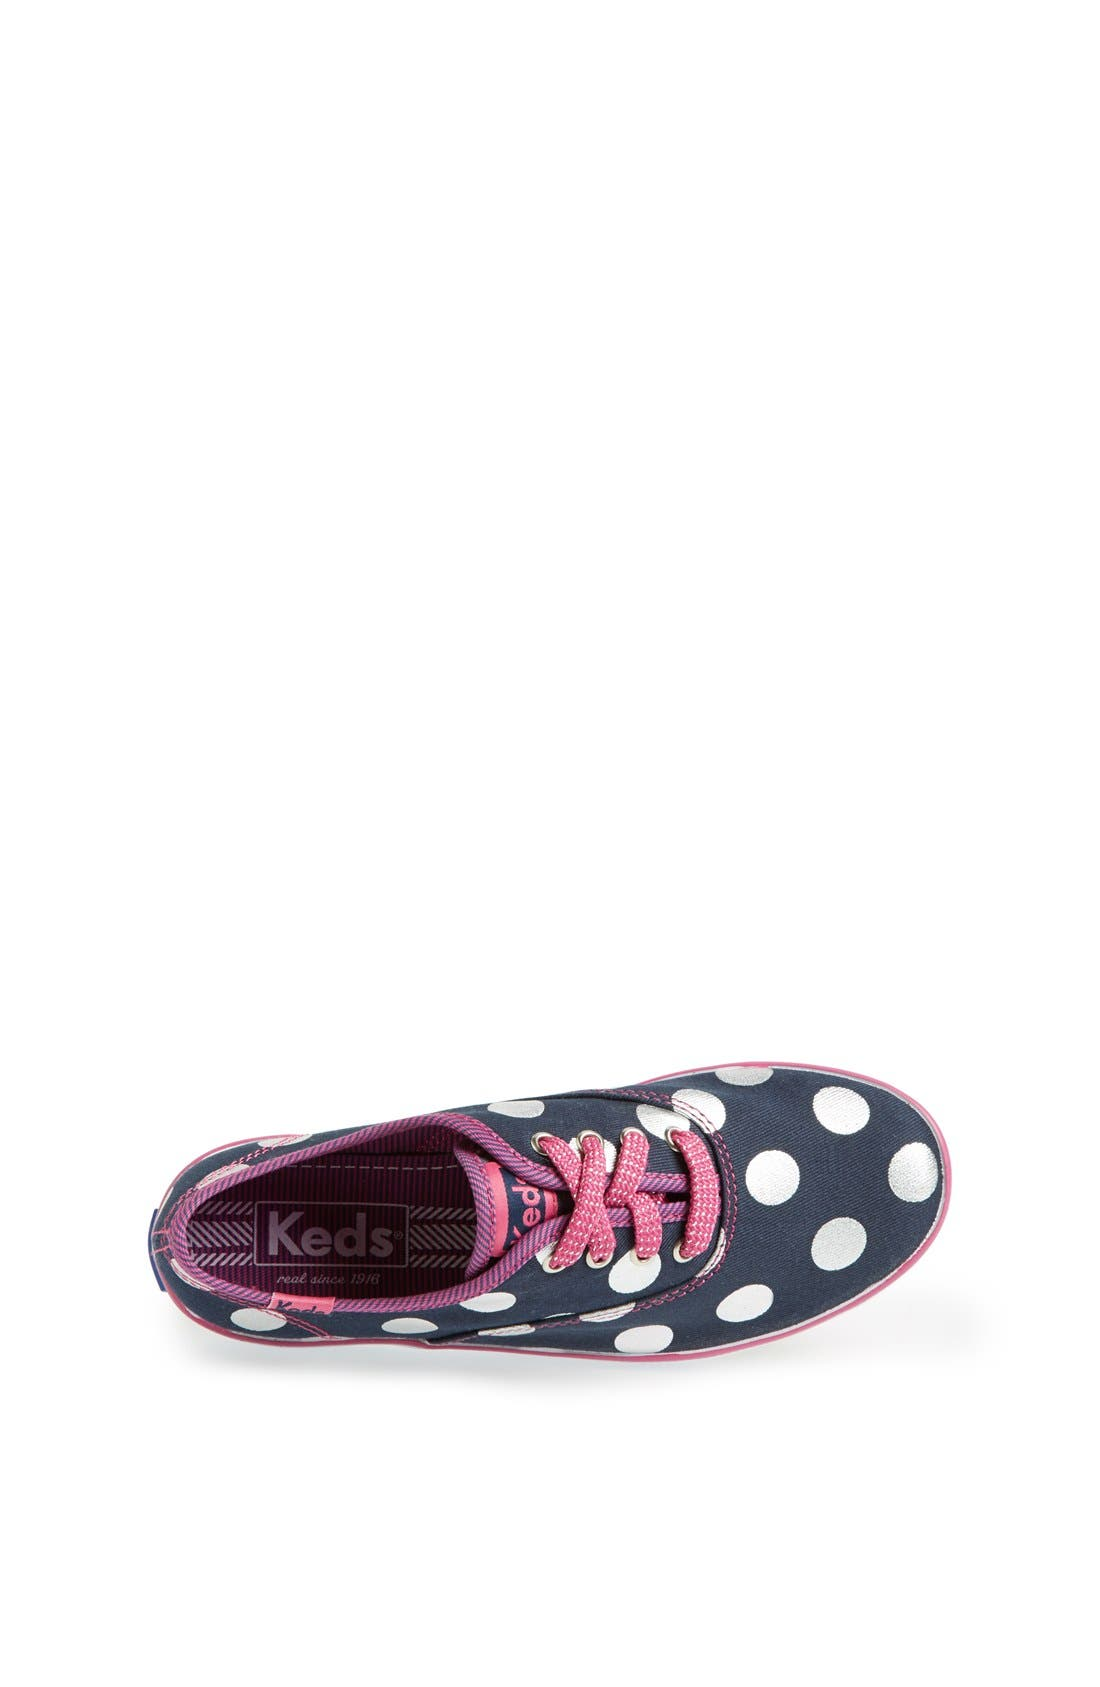 Alternate Image 3  - Keds® 'Champion' Polka Dot Sneaker (Walker, Toddler, Little Kid & Big Kid)